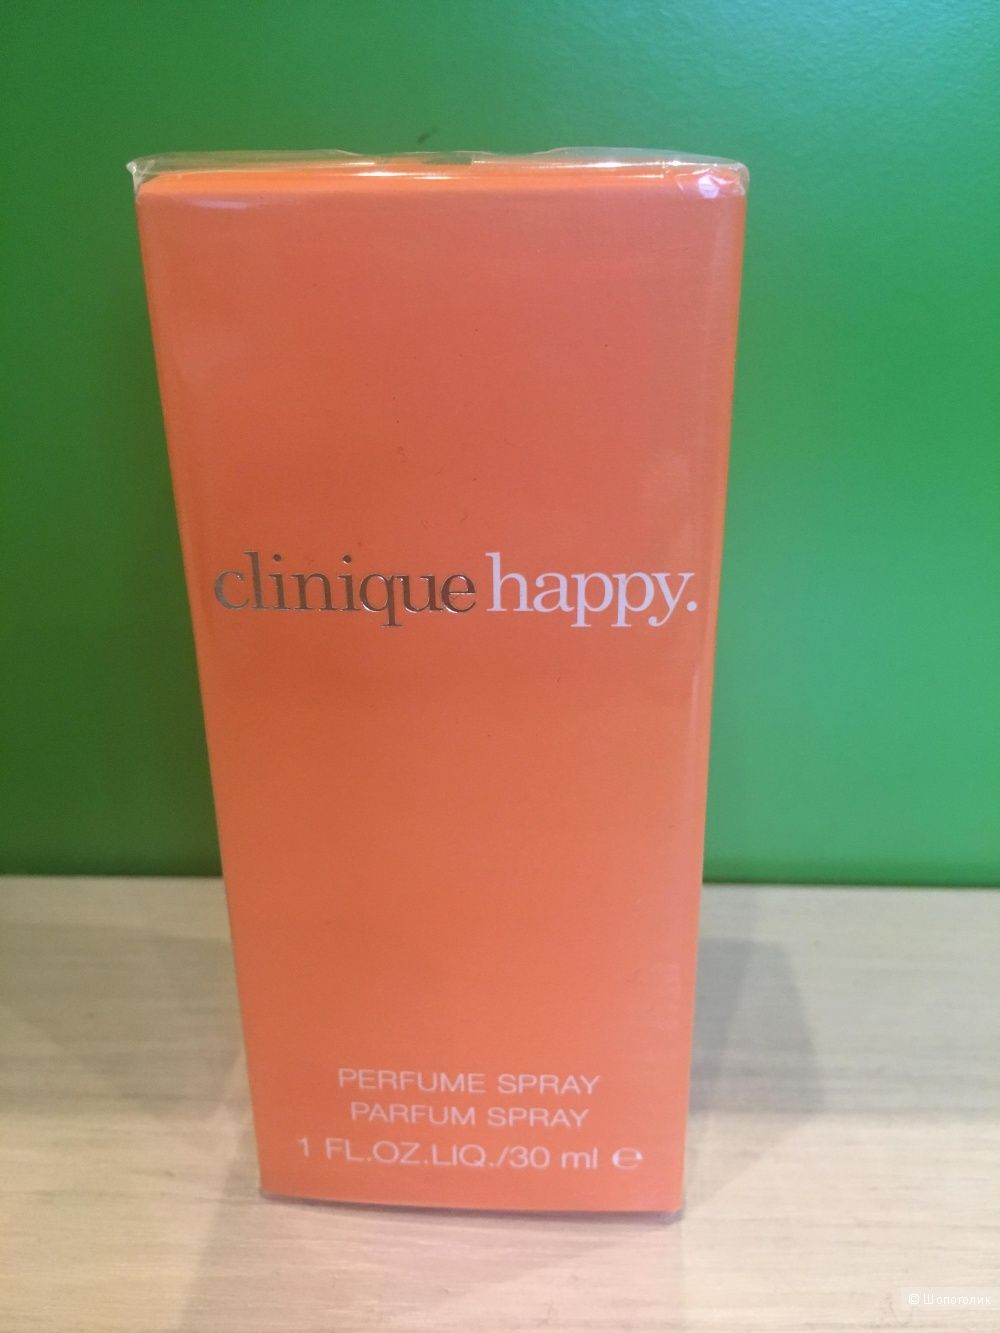 Clinique happy parfum spray 30мл.